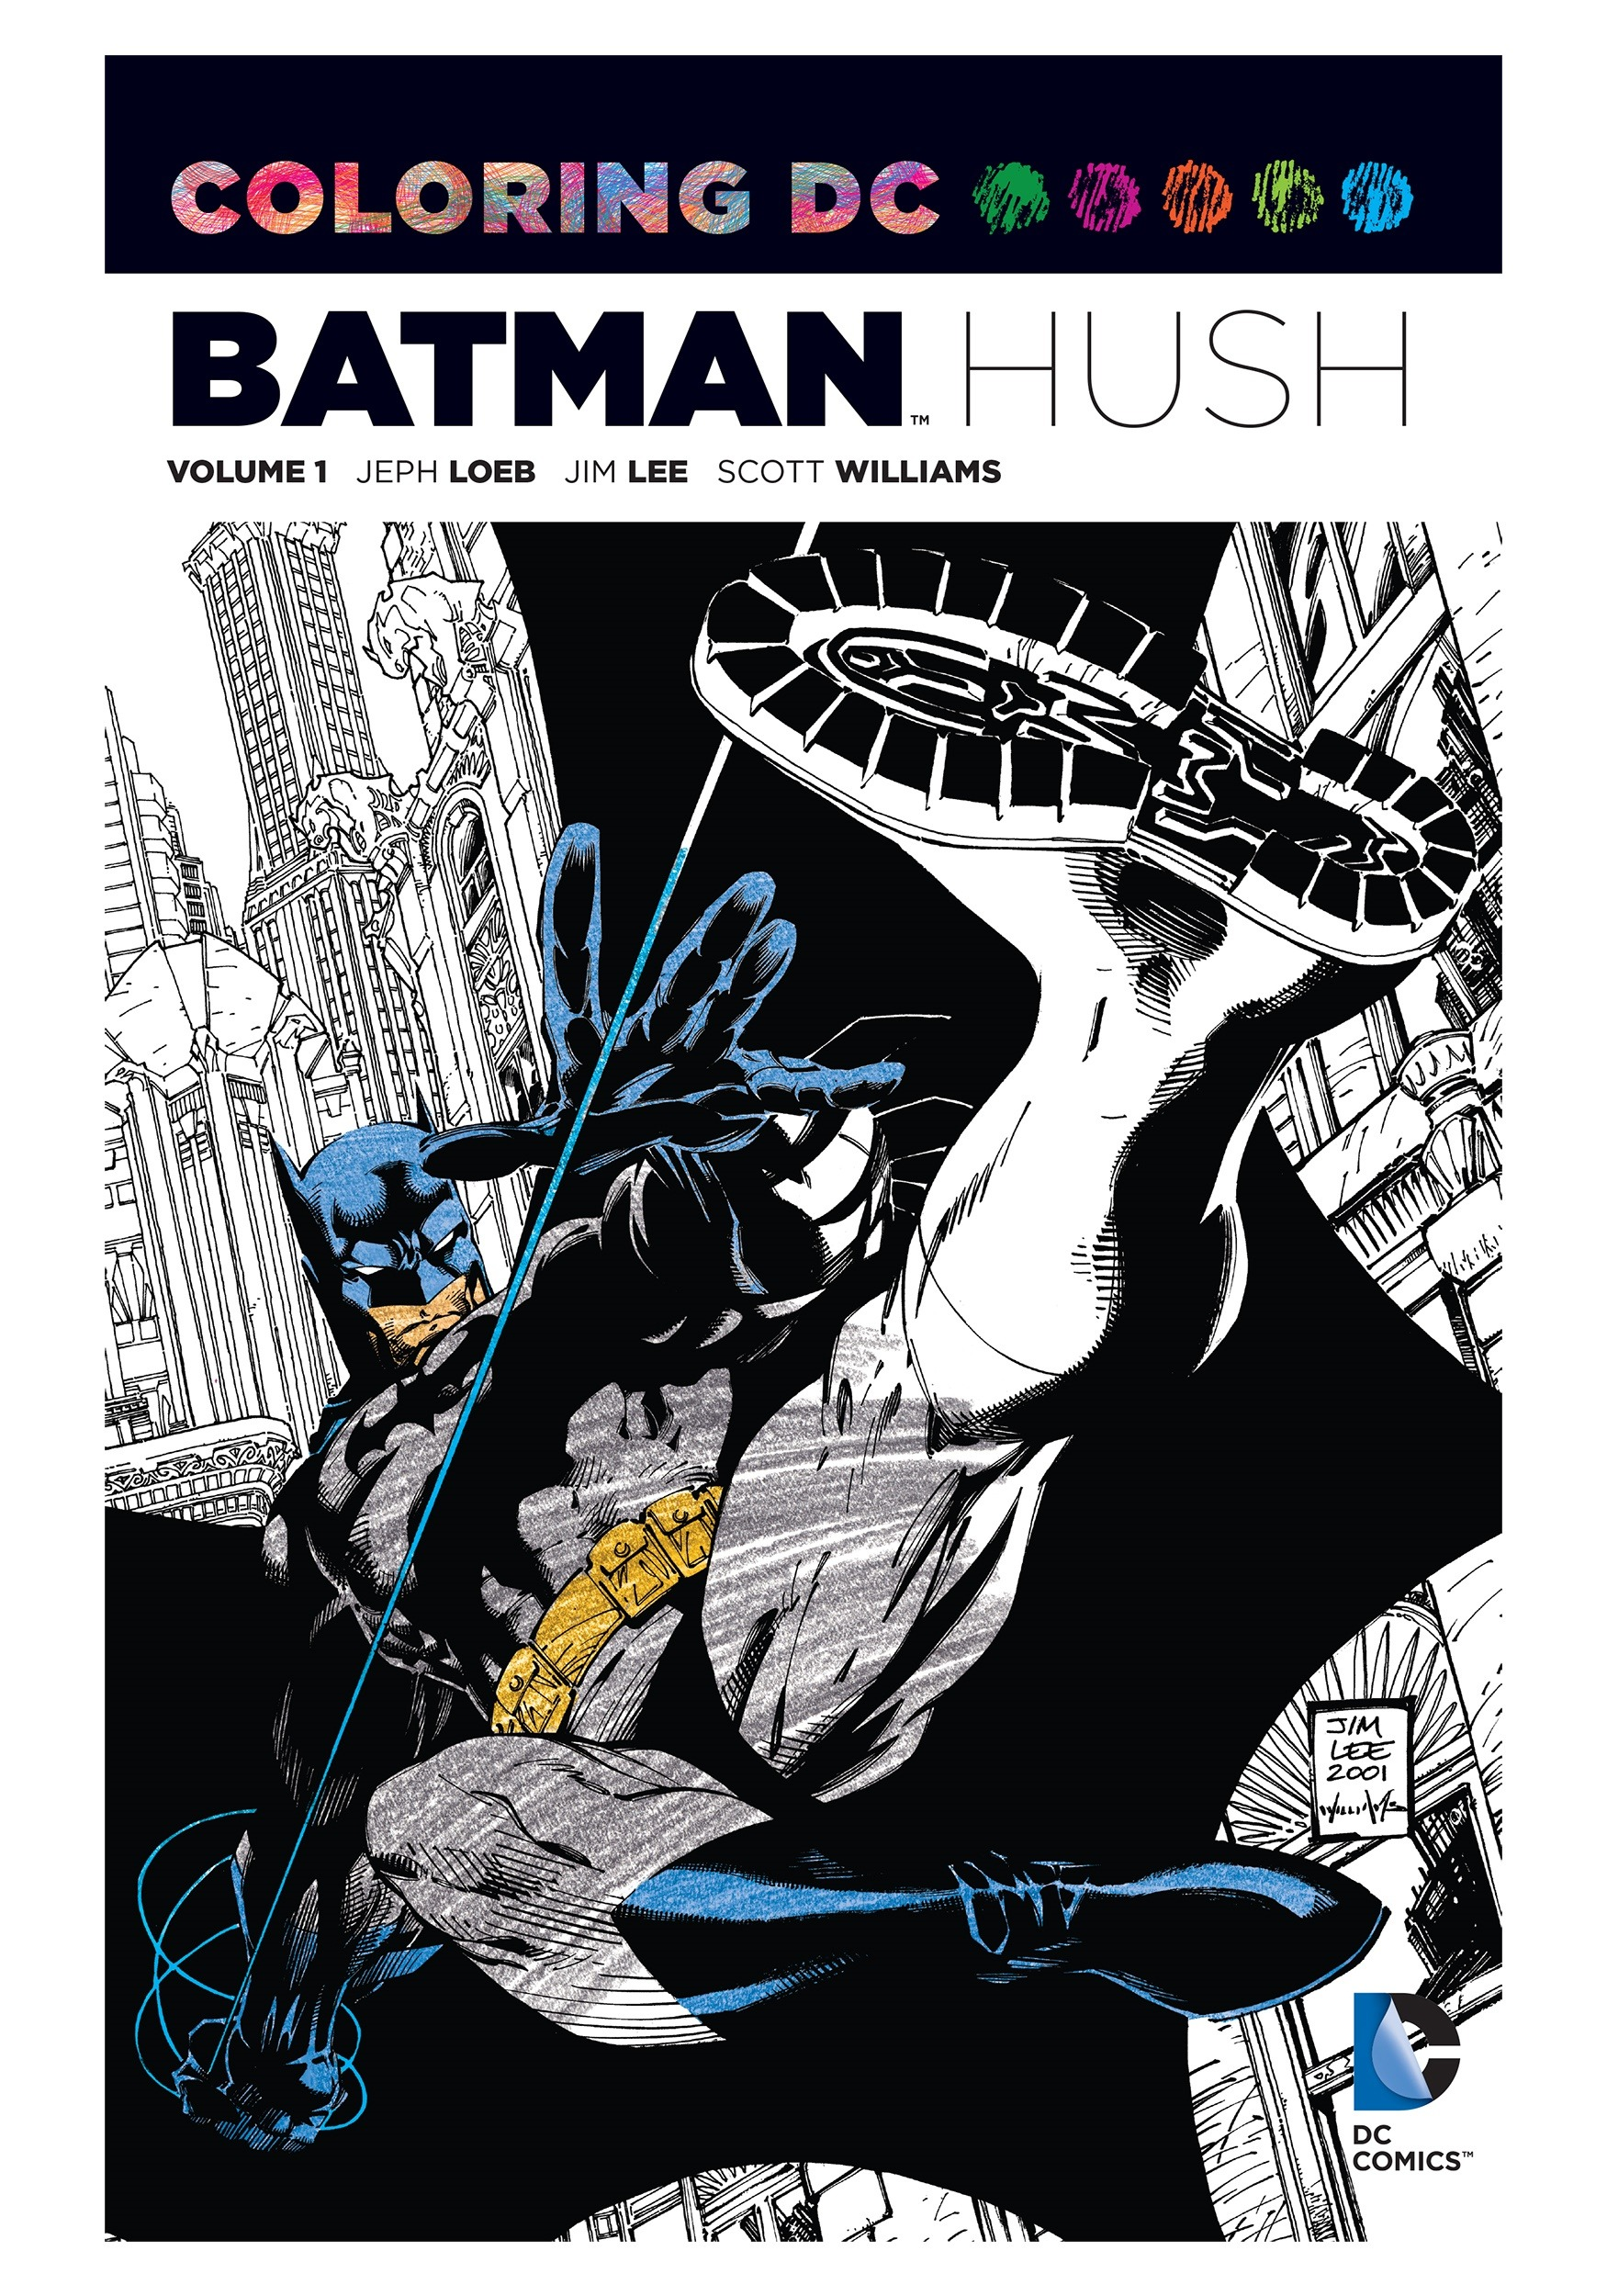 Coloring Dc Batman Hush Vol 1 Coloring Book